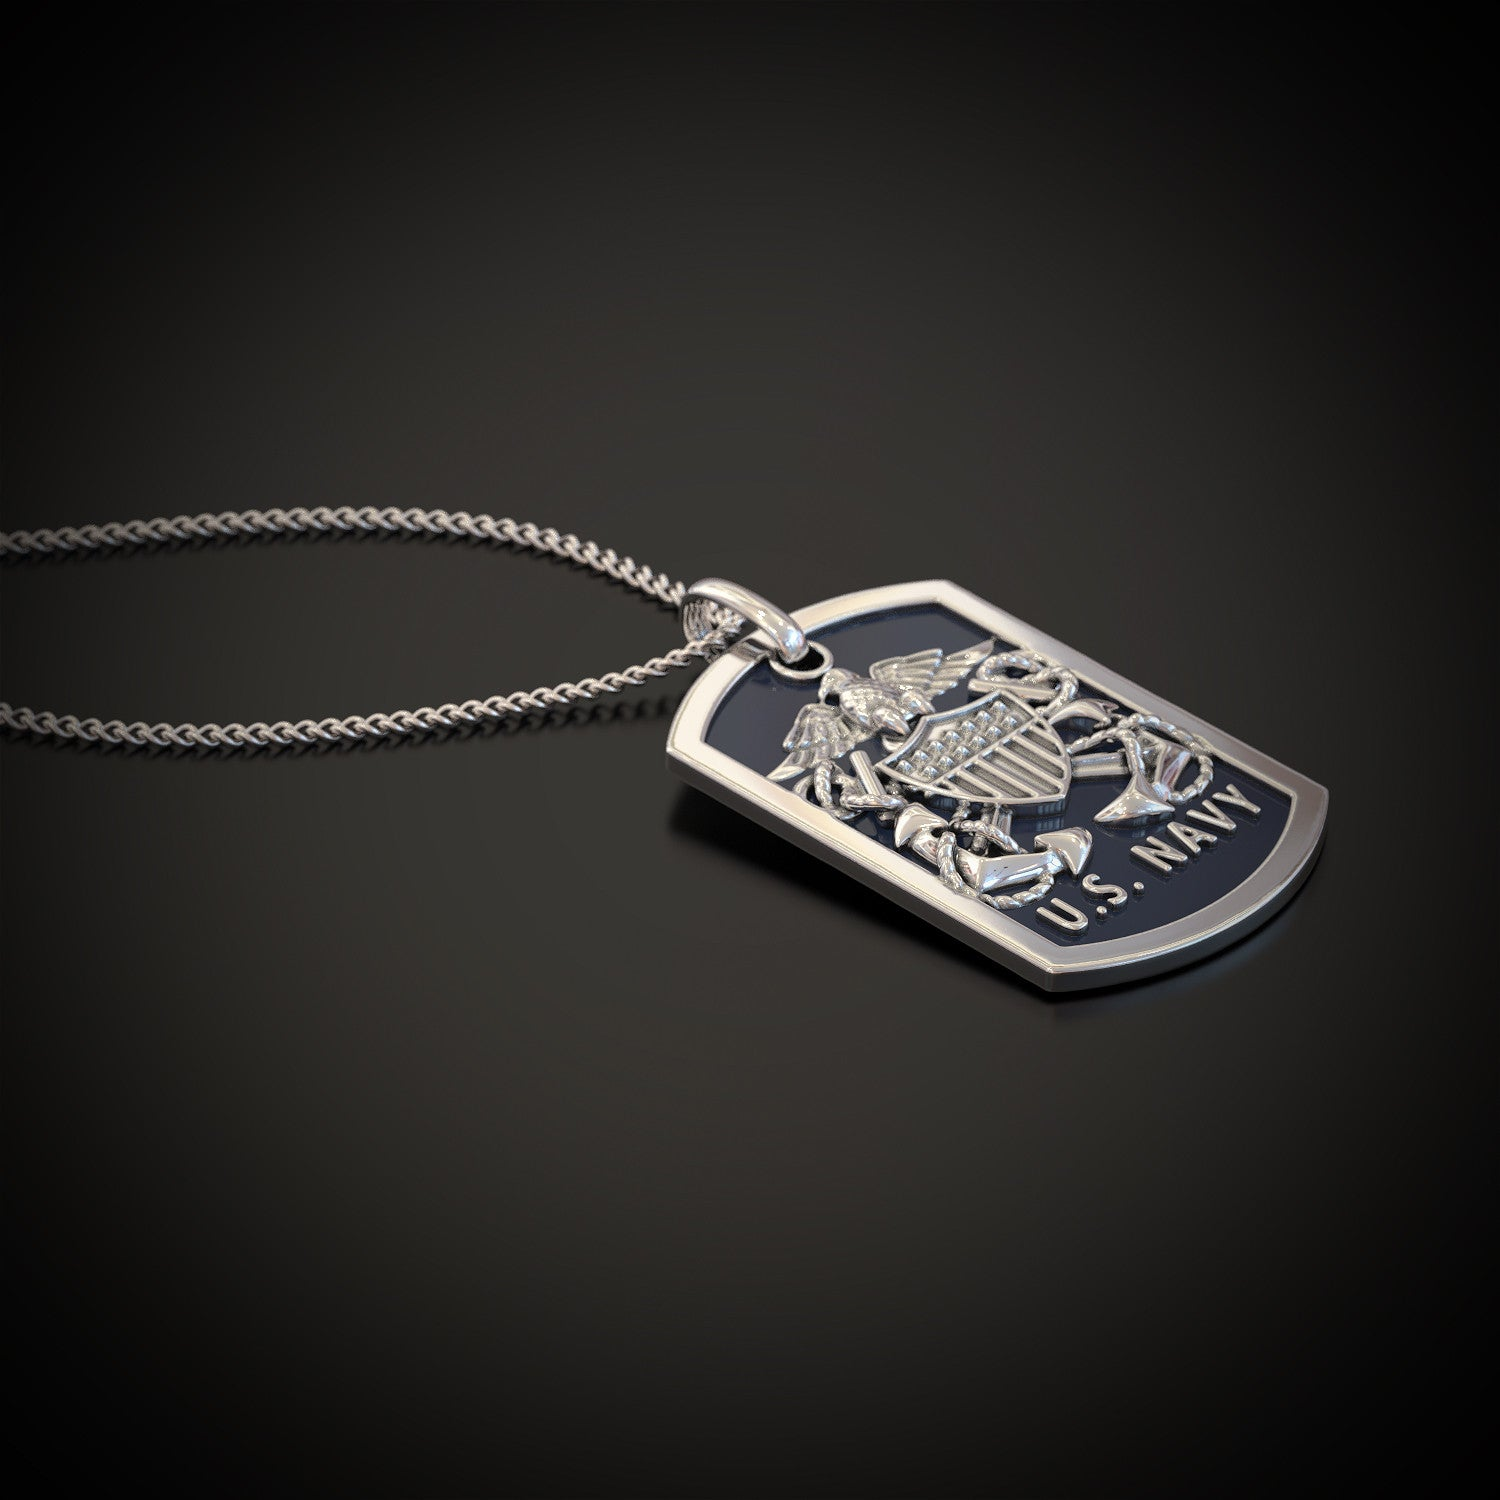 Us navy pendant shineon us navy pendant mozeypictures Images